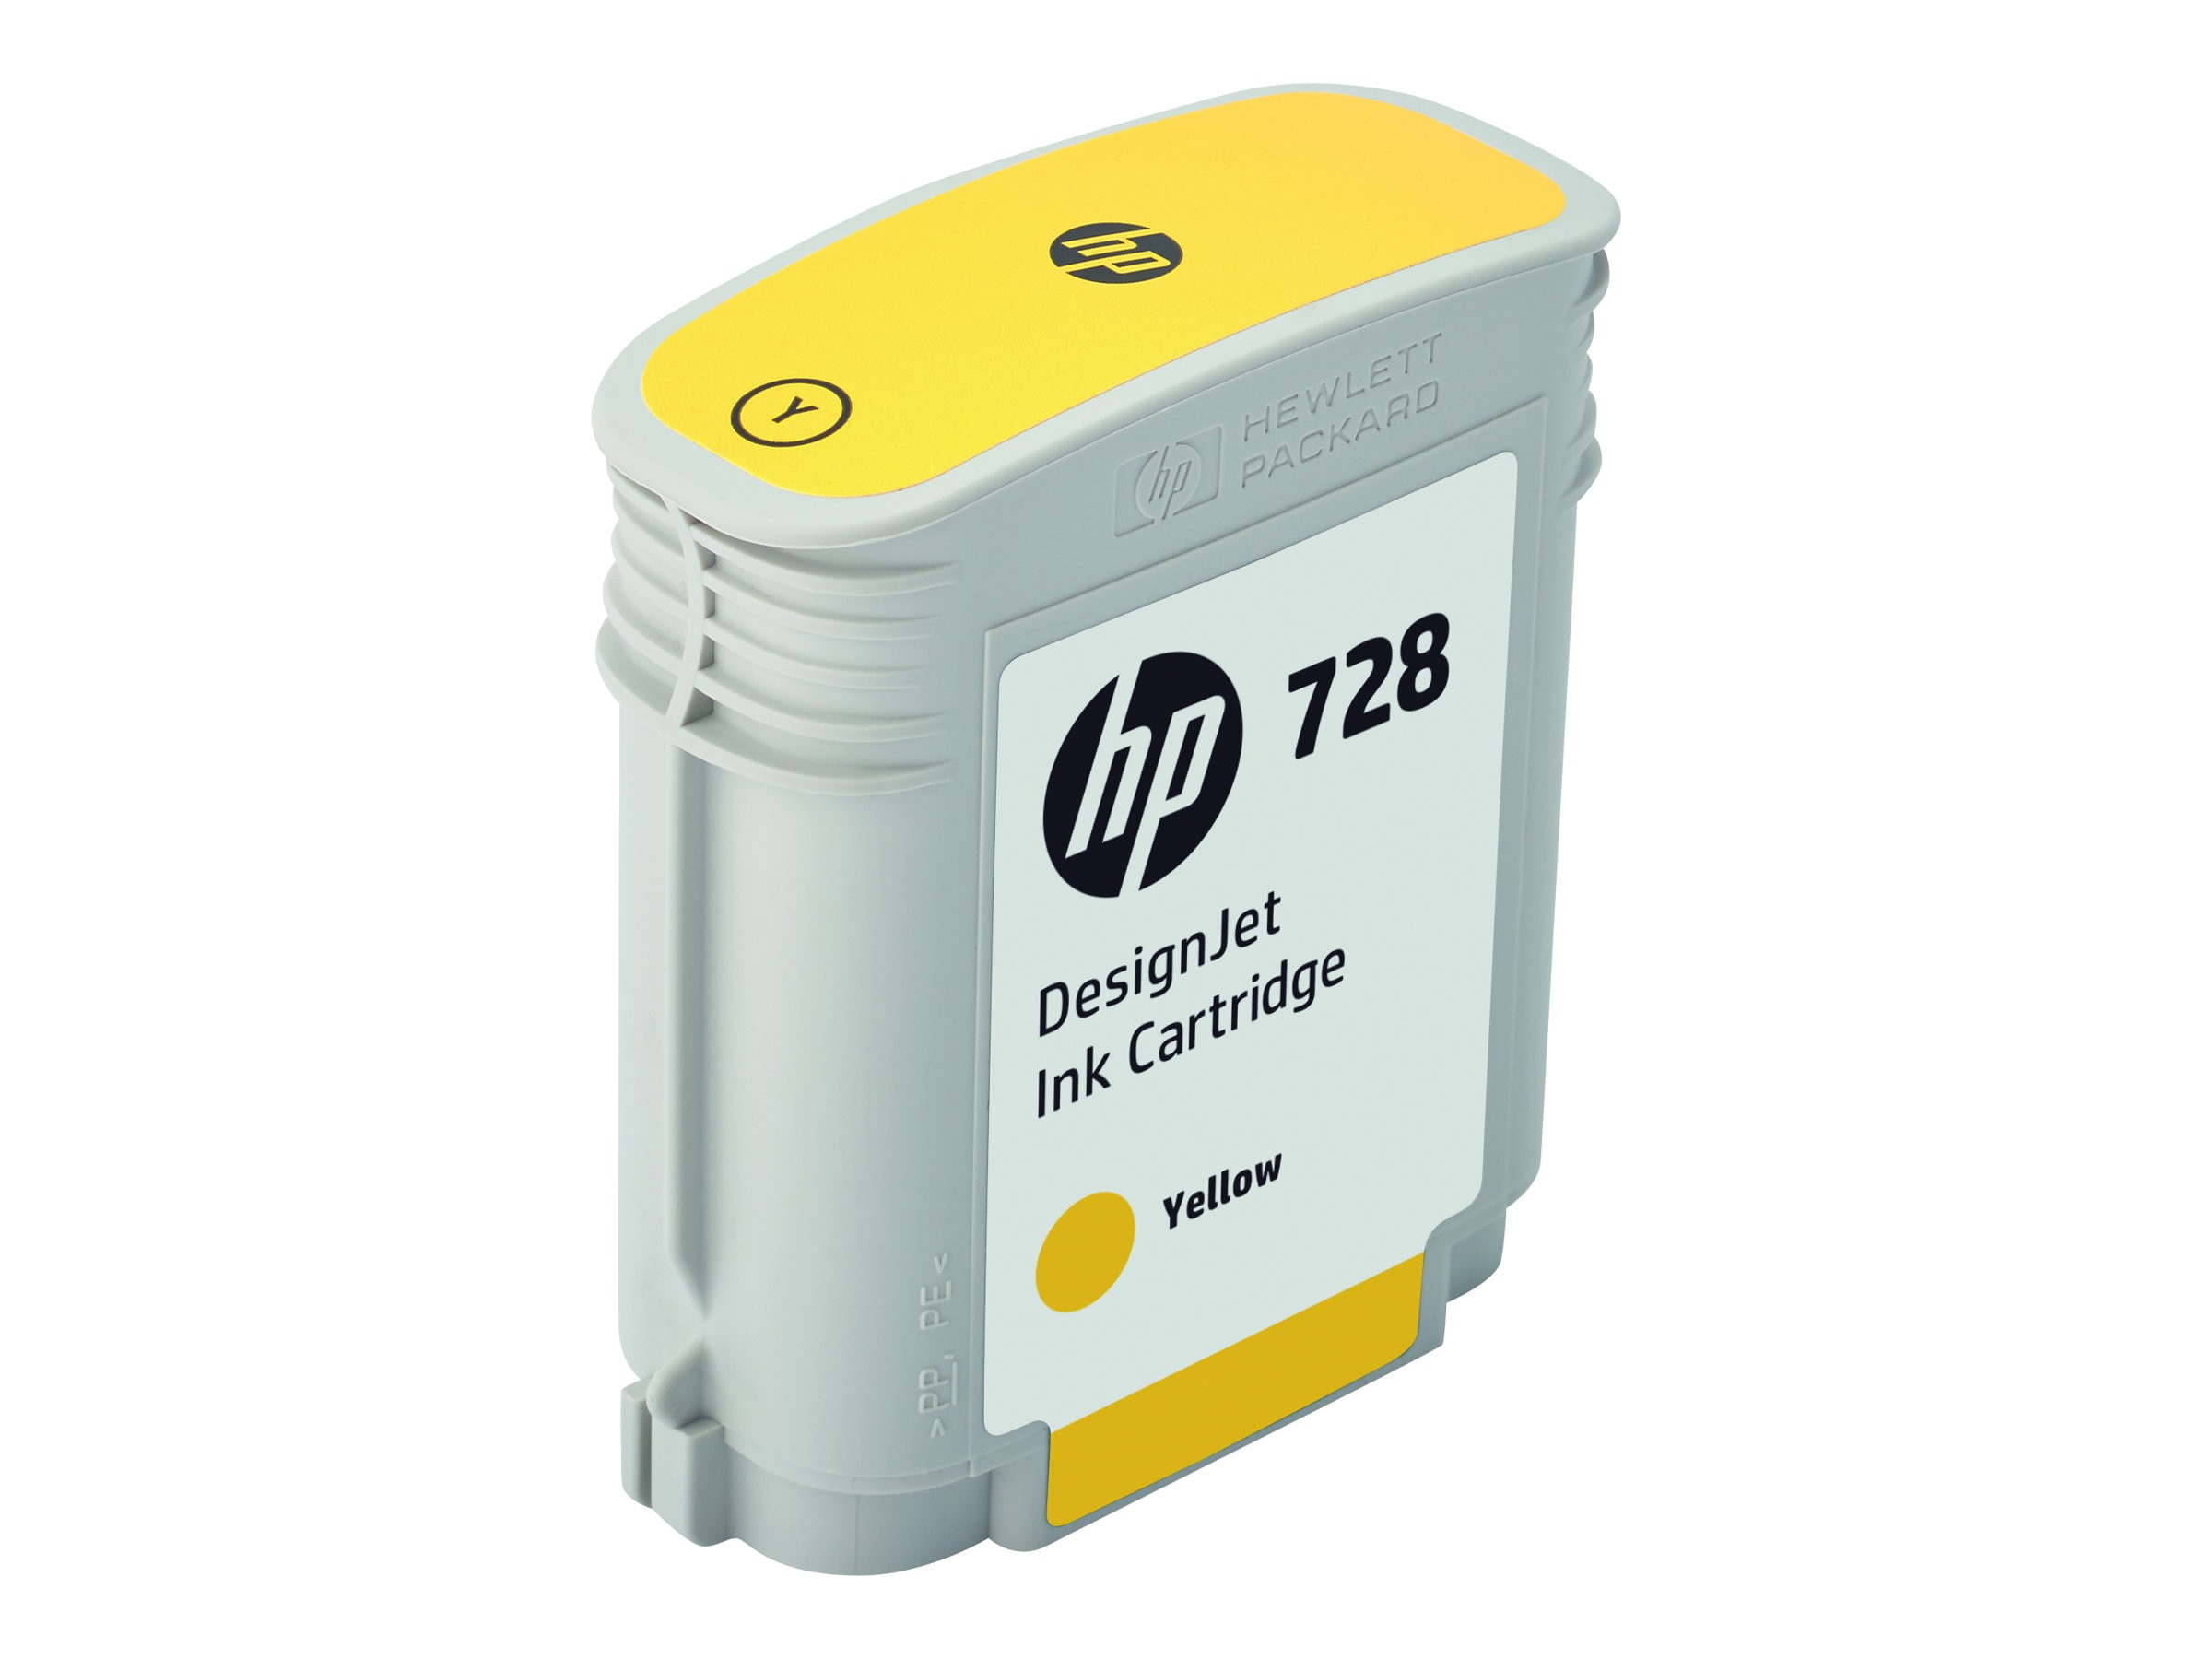 HP 728 (F9J67A) 130ml Cyan Designjet Ink Cartridge for HP DesignJet T730 & T830 Series, F9J67A, 30982623, Ink Cartridges & Ink Refill Kits